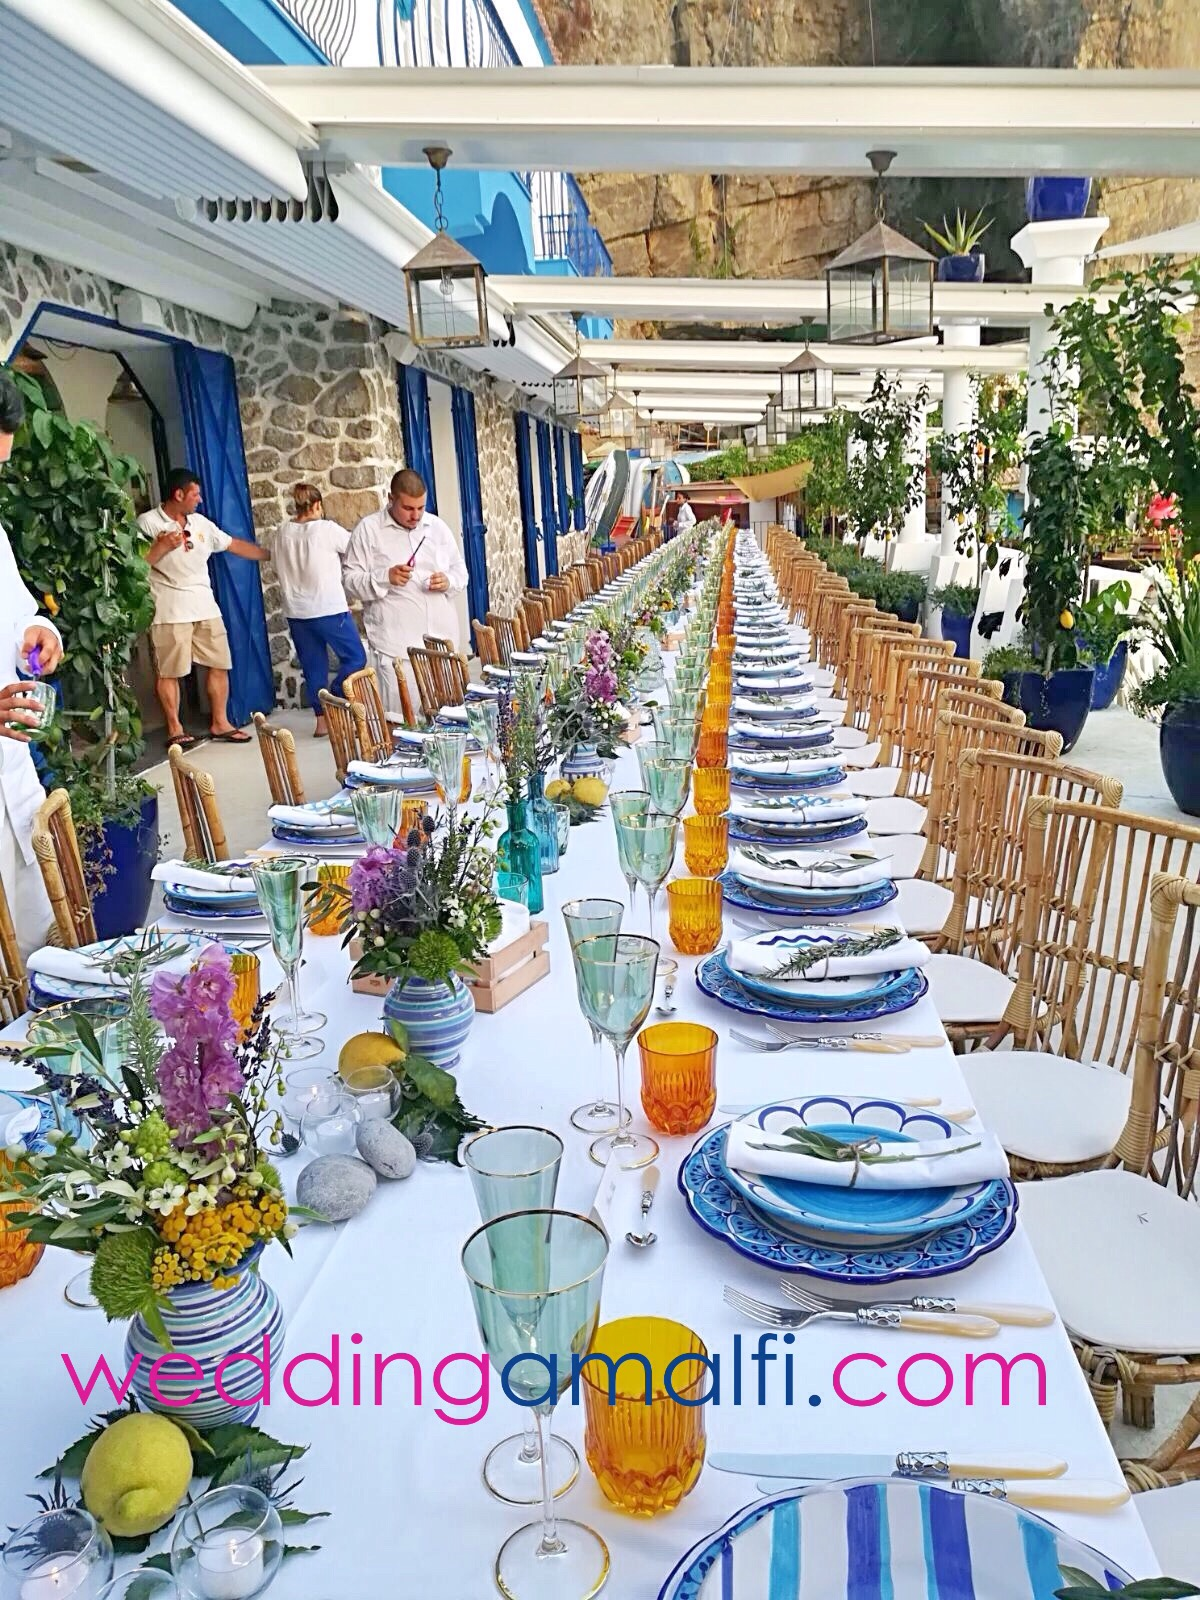 http://www.weddingamalfi.com/wp-content/uploads/Anna-and-Charles-wedding-table-colorful-decorations.jpeg